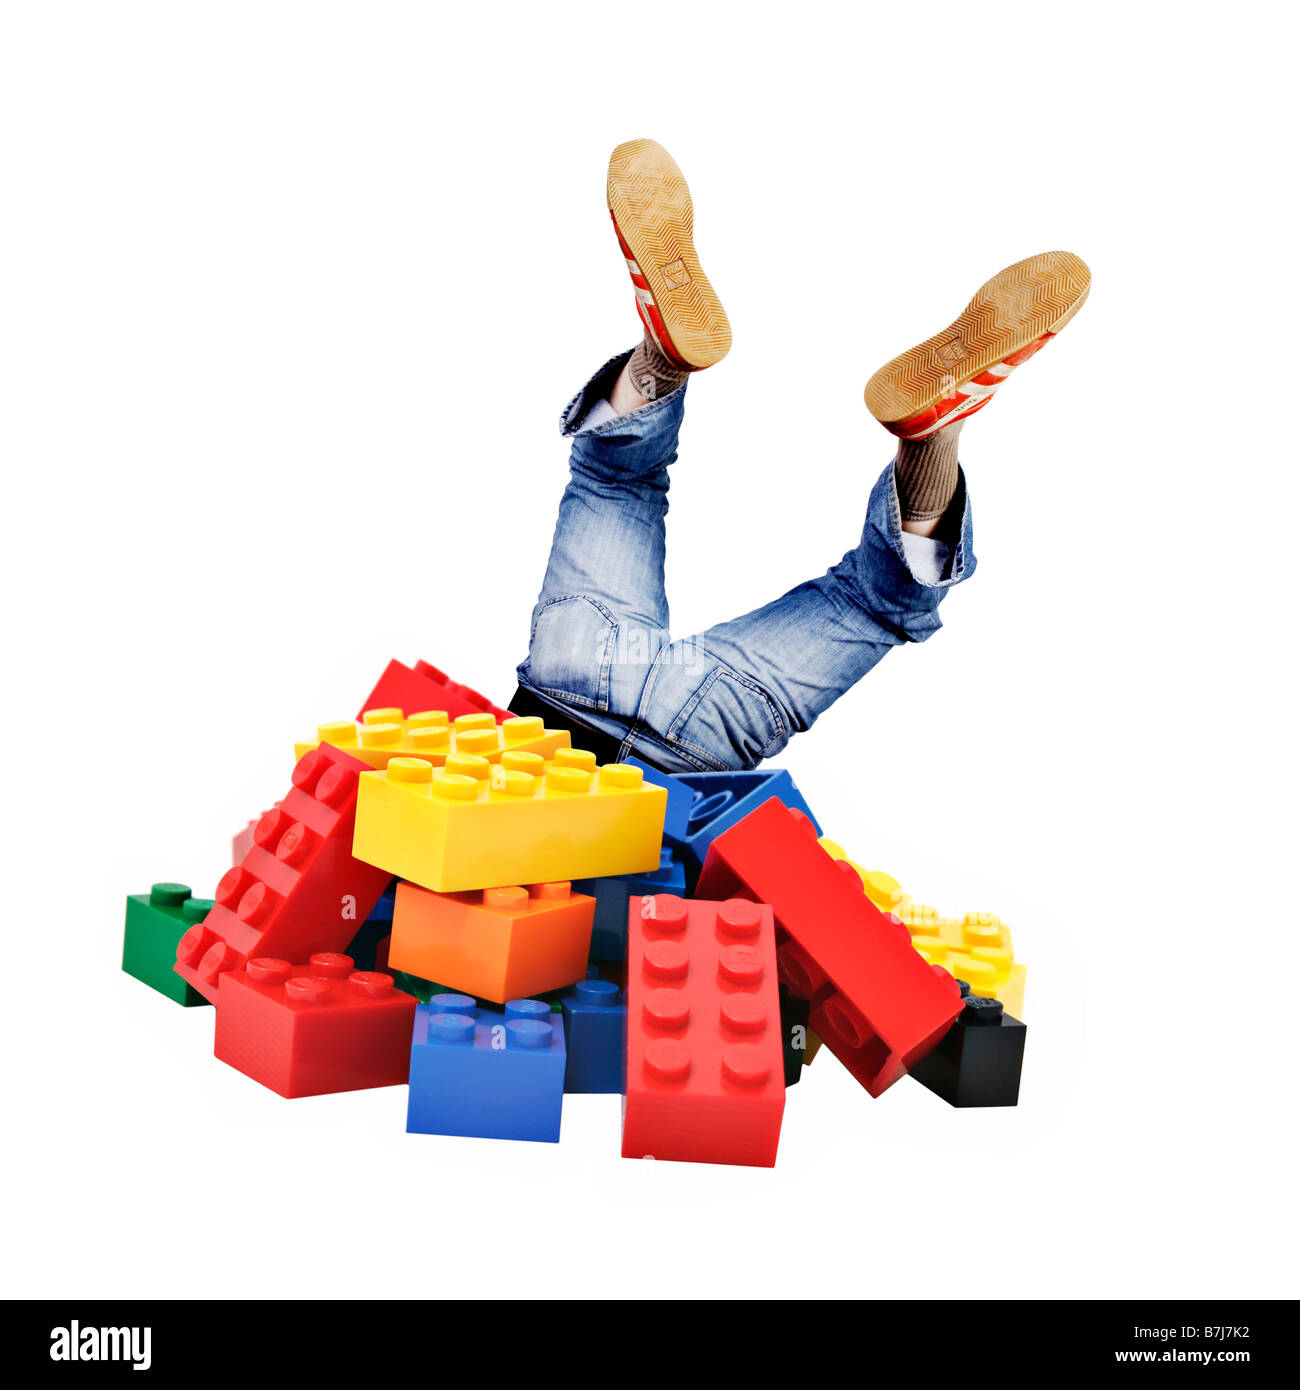 Person Head First In A Pile Of Lego Bricks